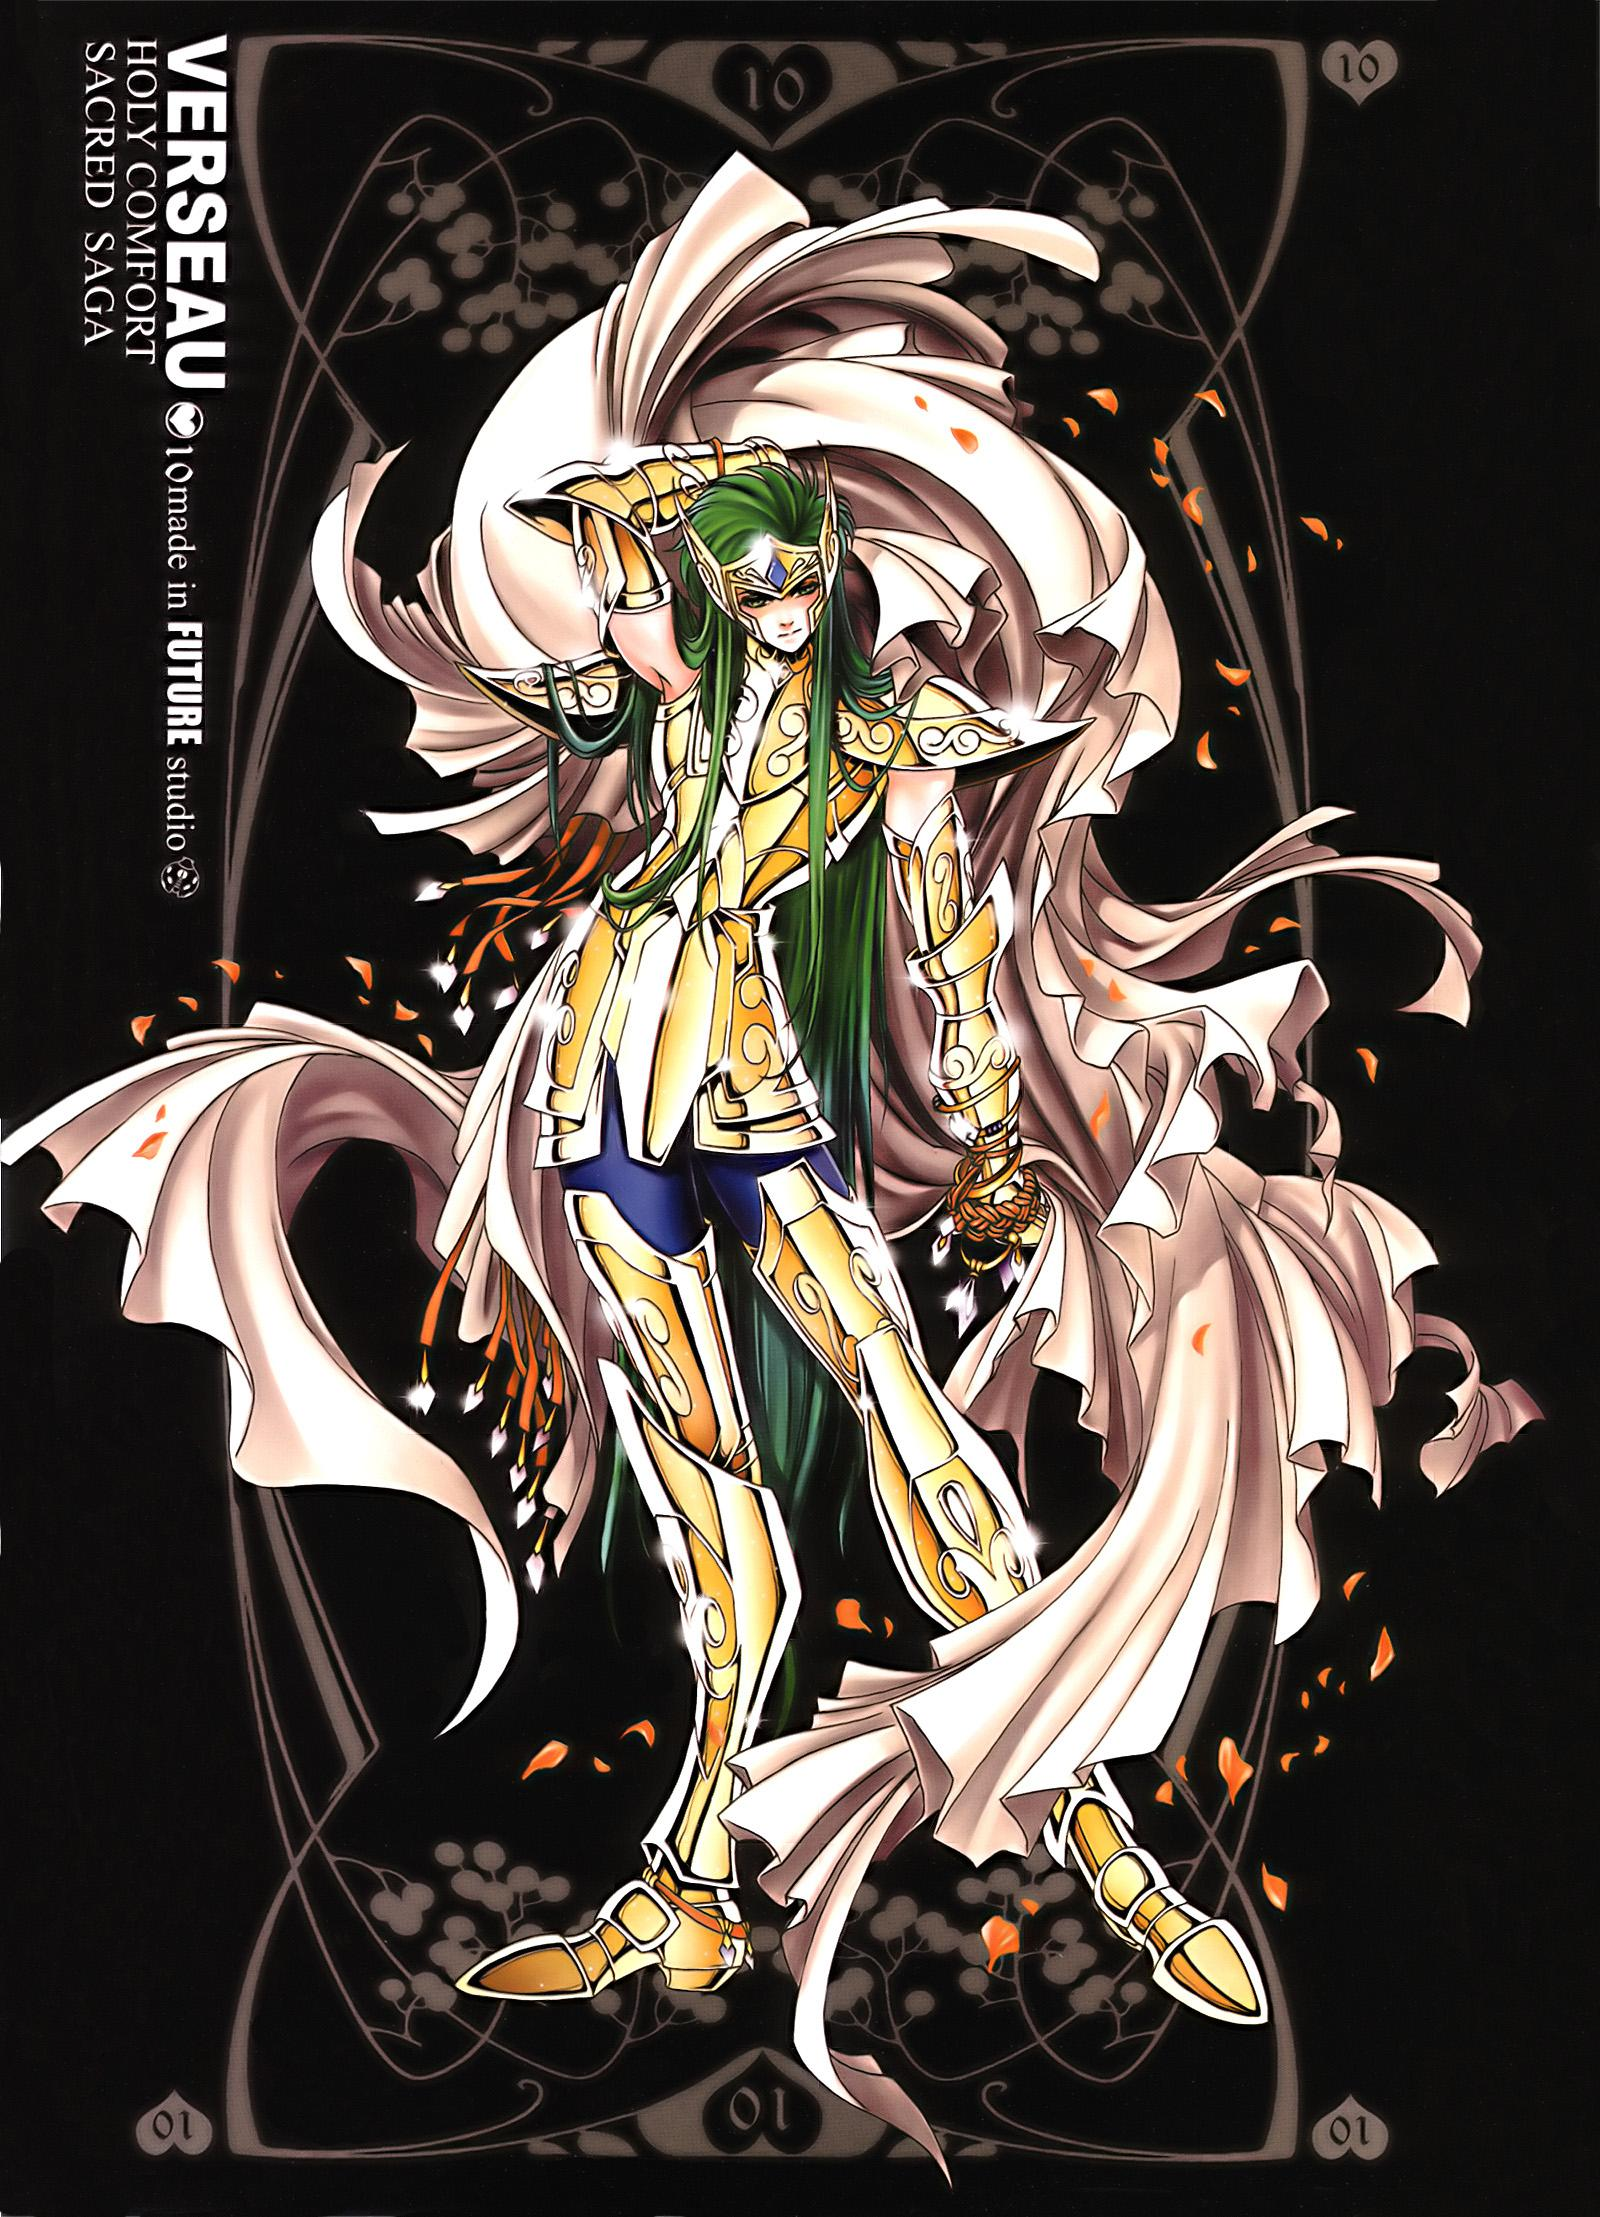 Download Saint Seiya: Aquarius Camus (1600x2217) - Minitokyo